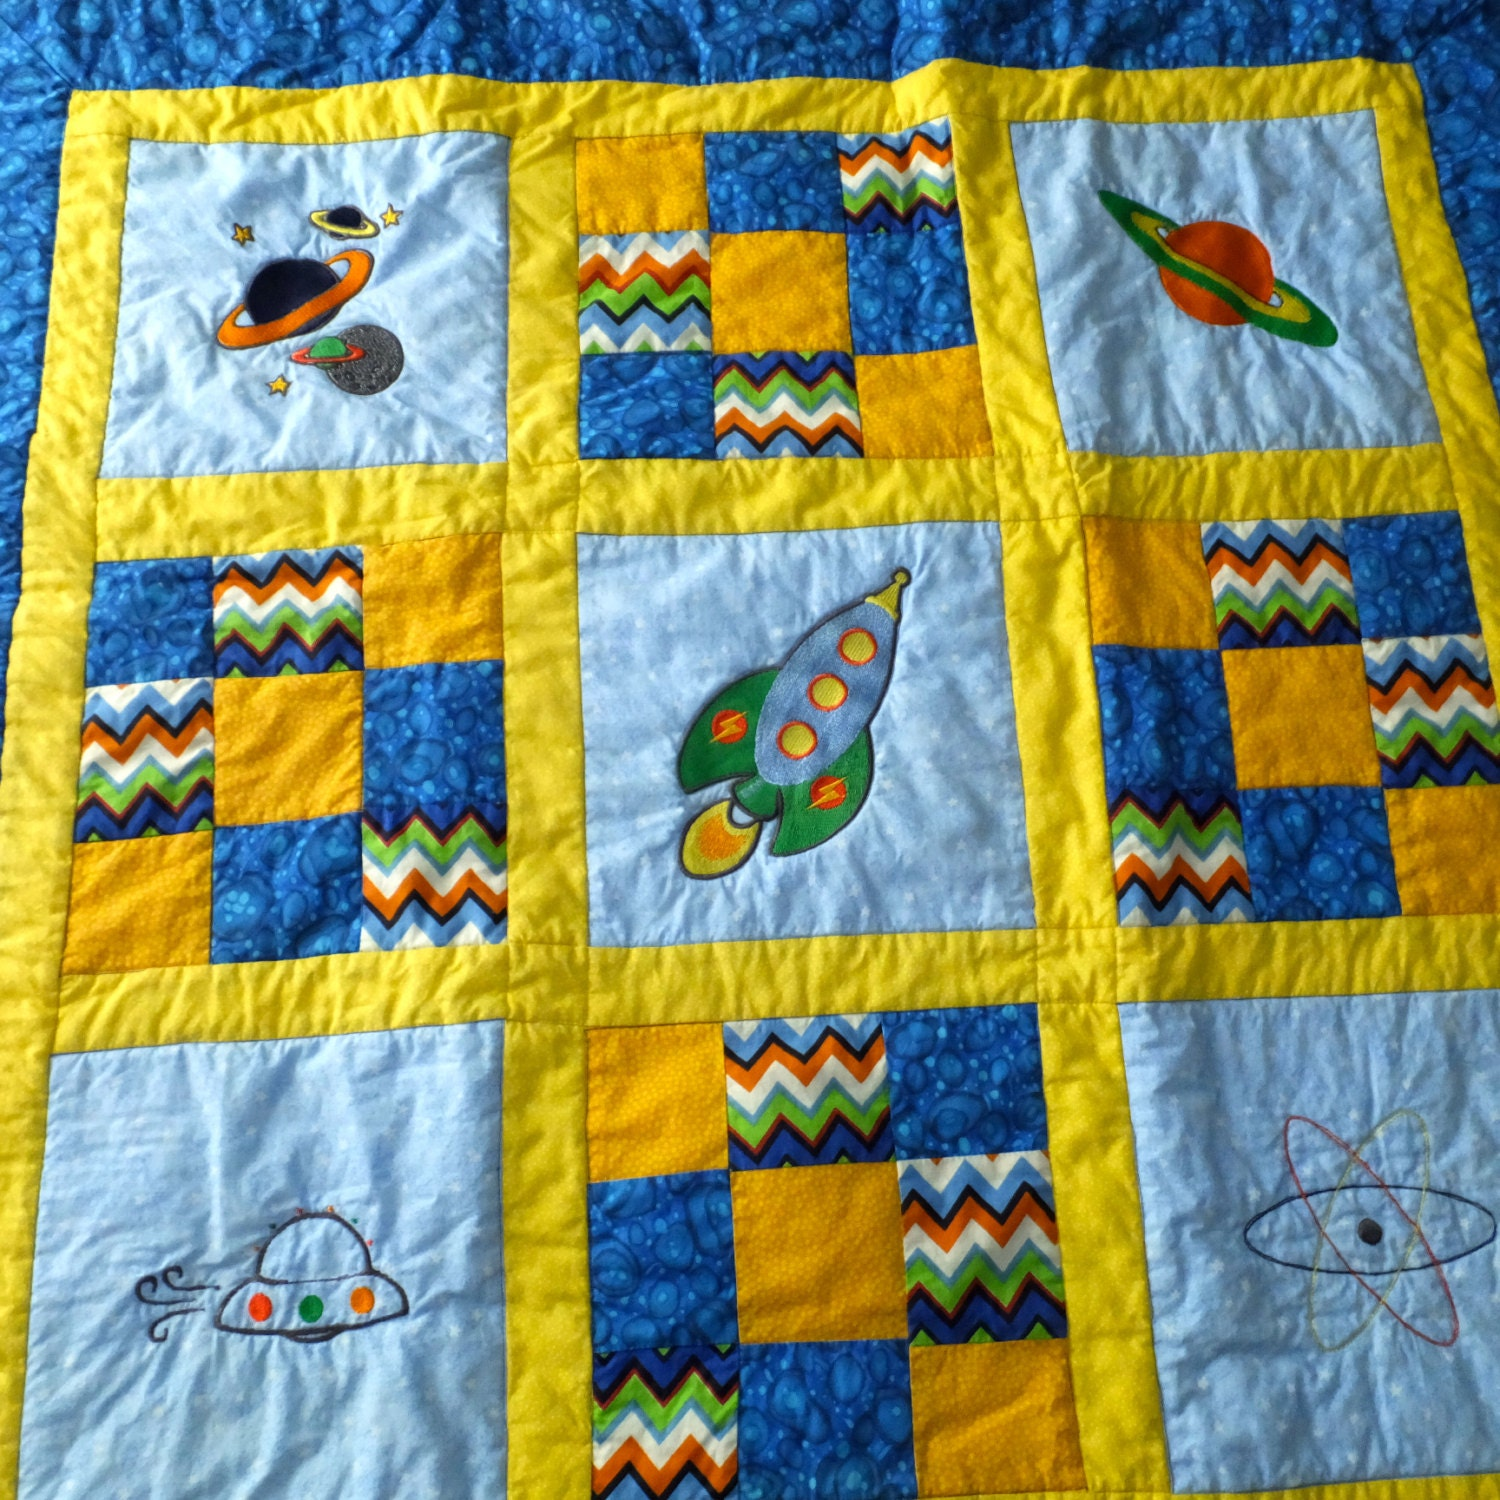 Baby boy quilt homemade baby quilt space theme by duckwells for Boy quilt fabric